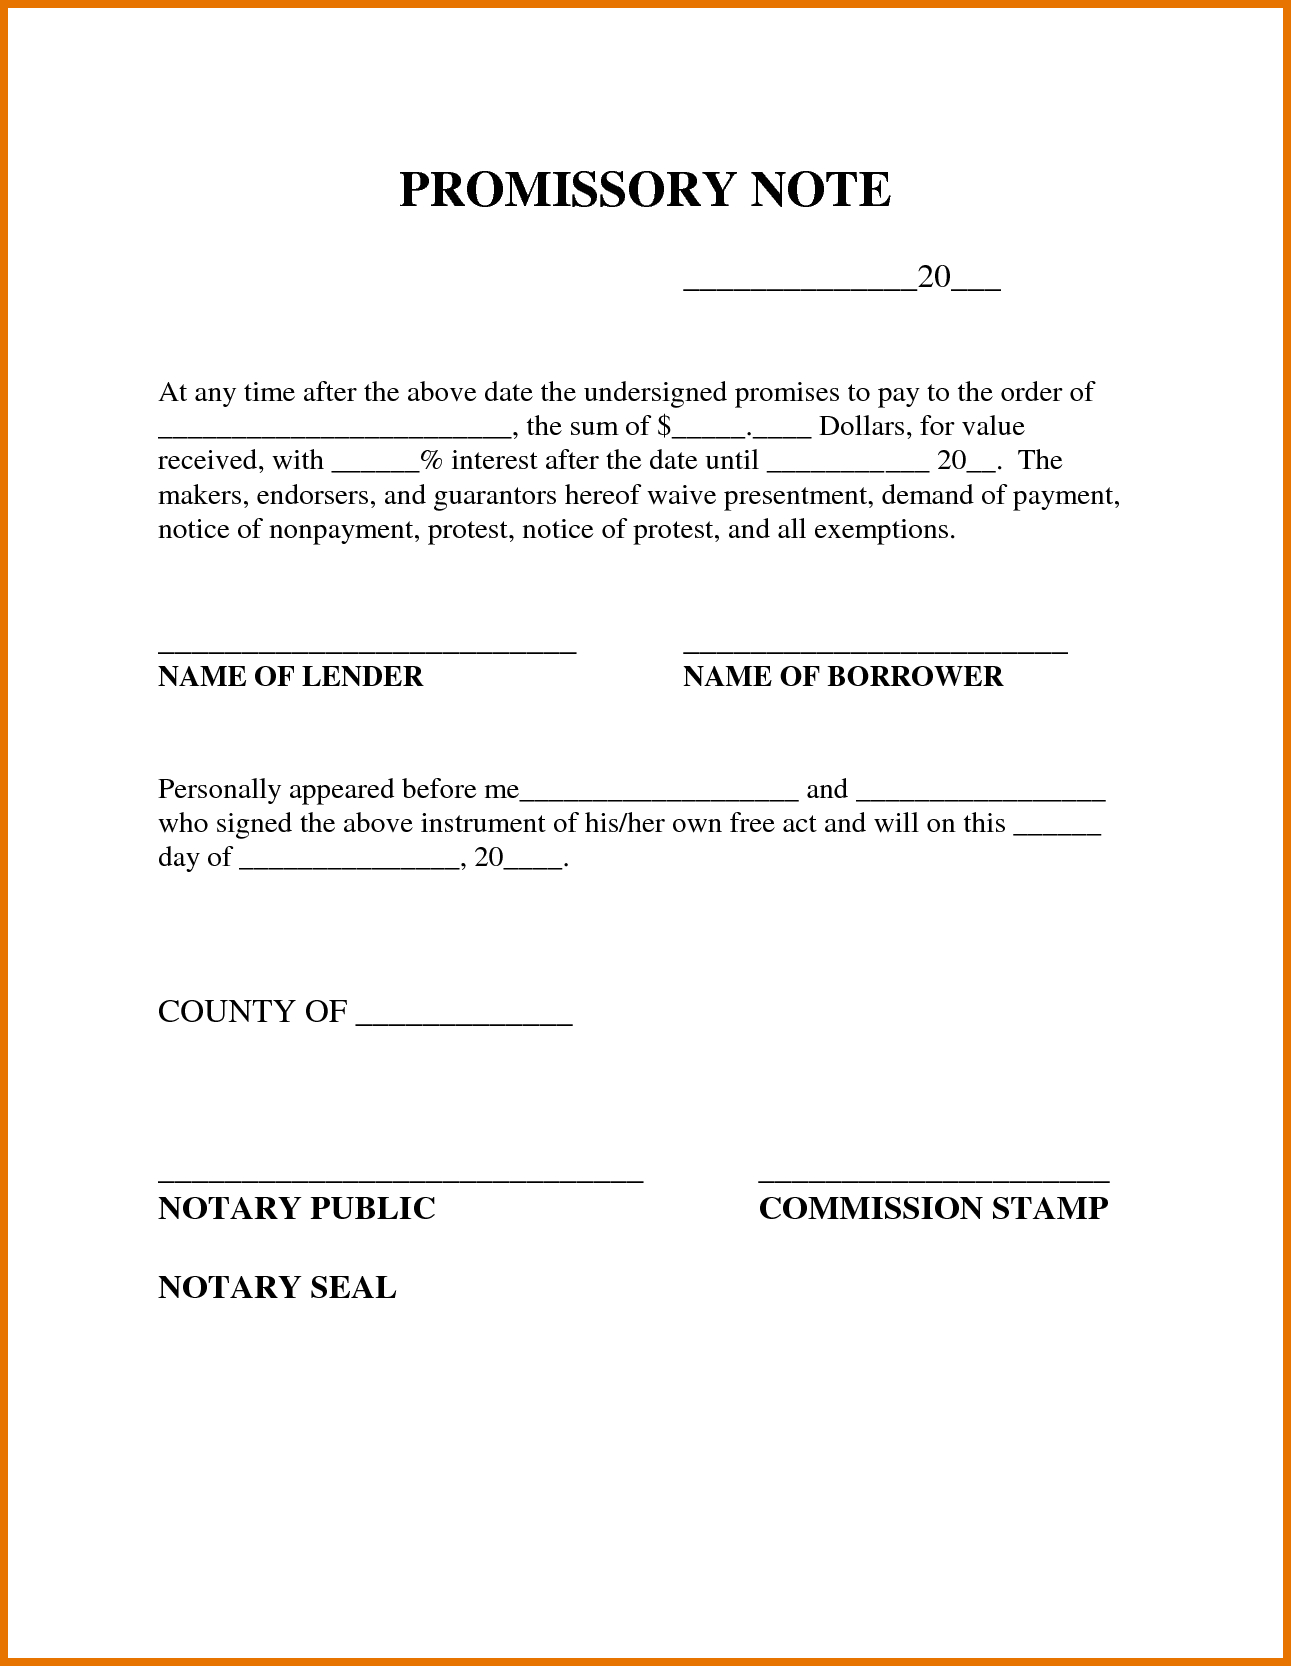 Free Printable Promissory Note Template : Violeet - Free Printable Promissory Note For Personal Loan